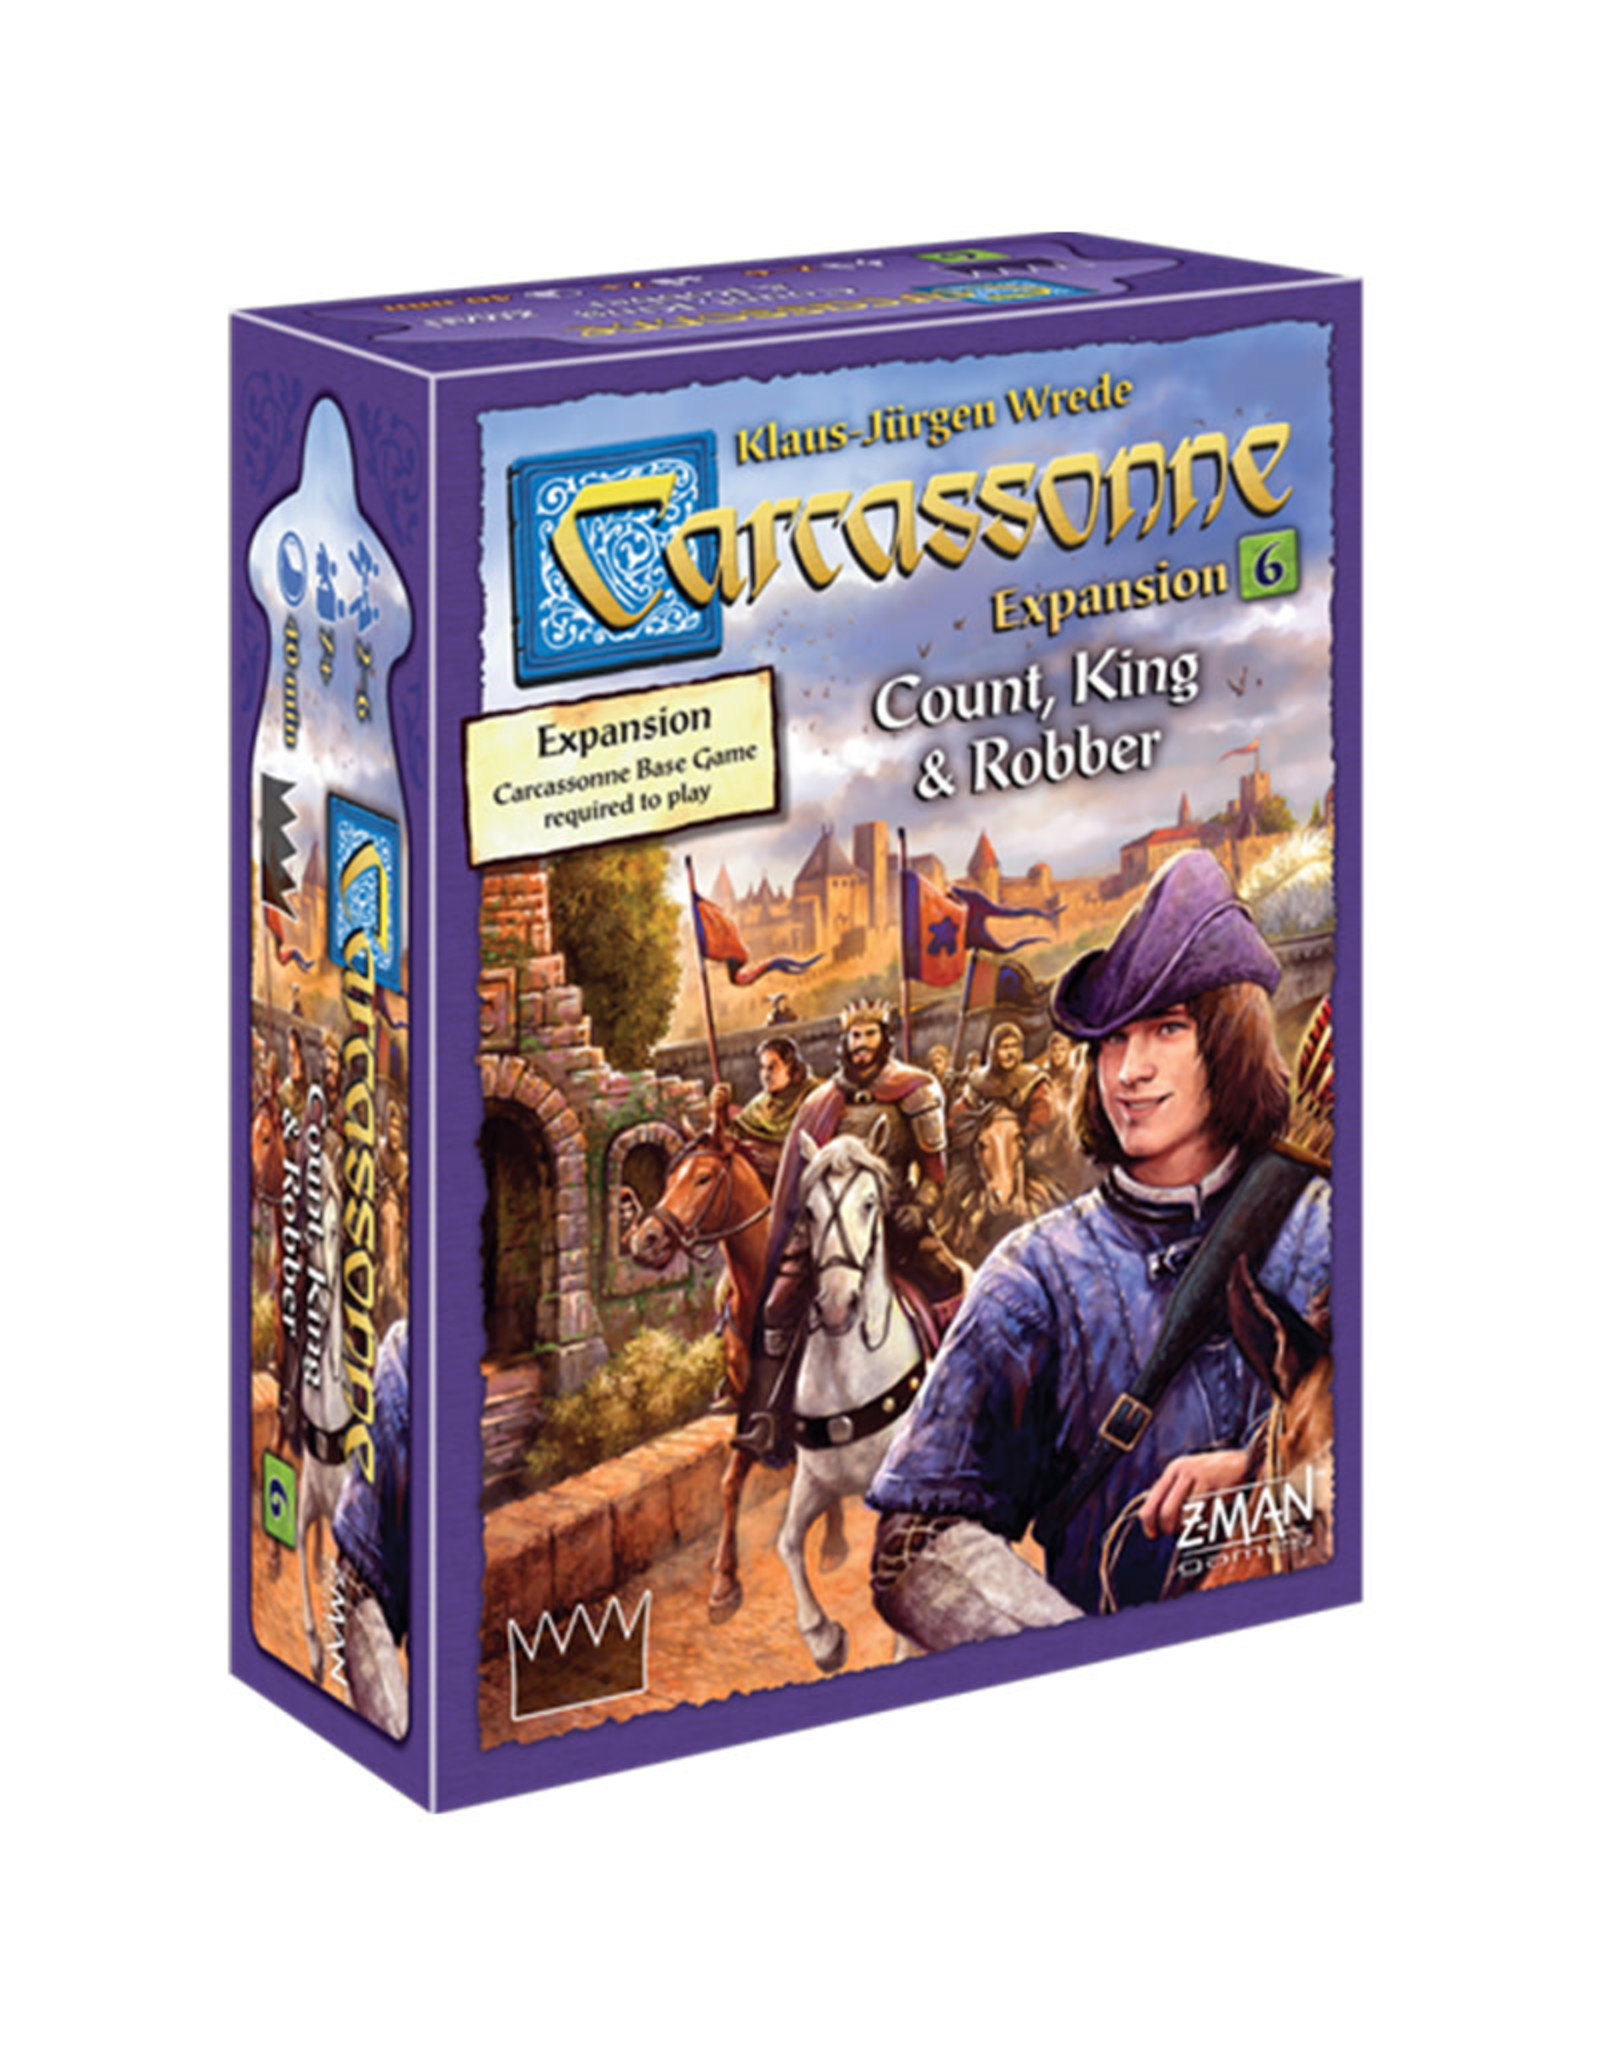 Carcassonne Expansion 6 Count/King/Robber